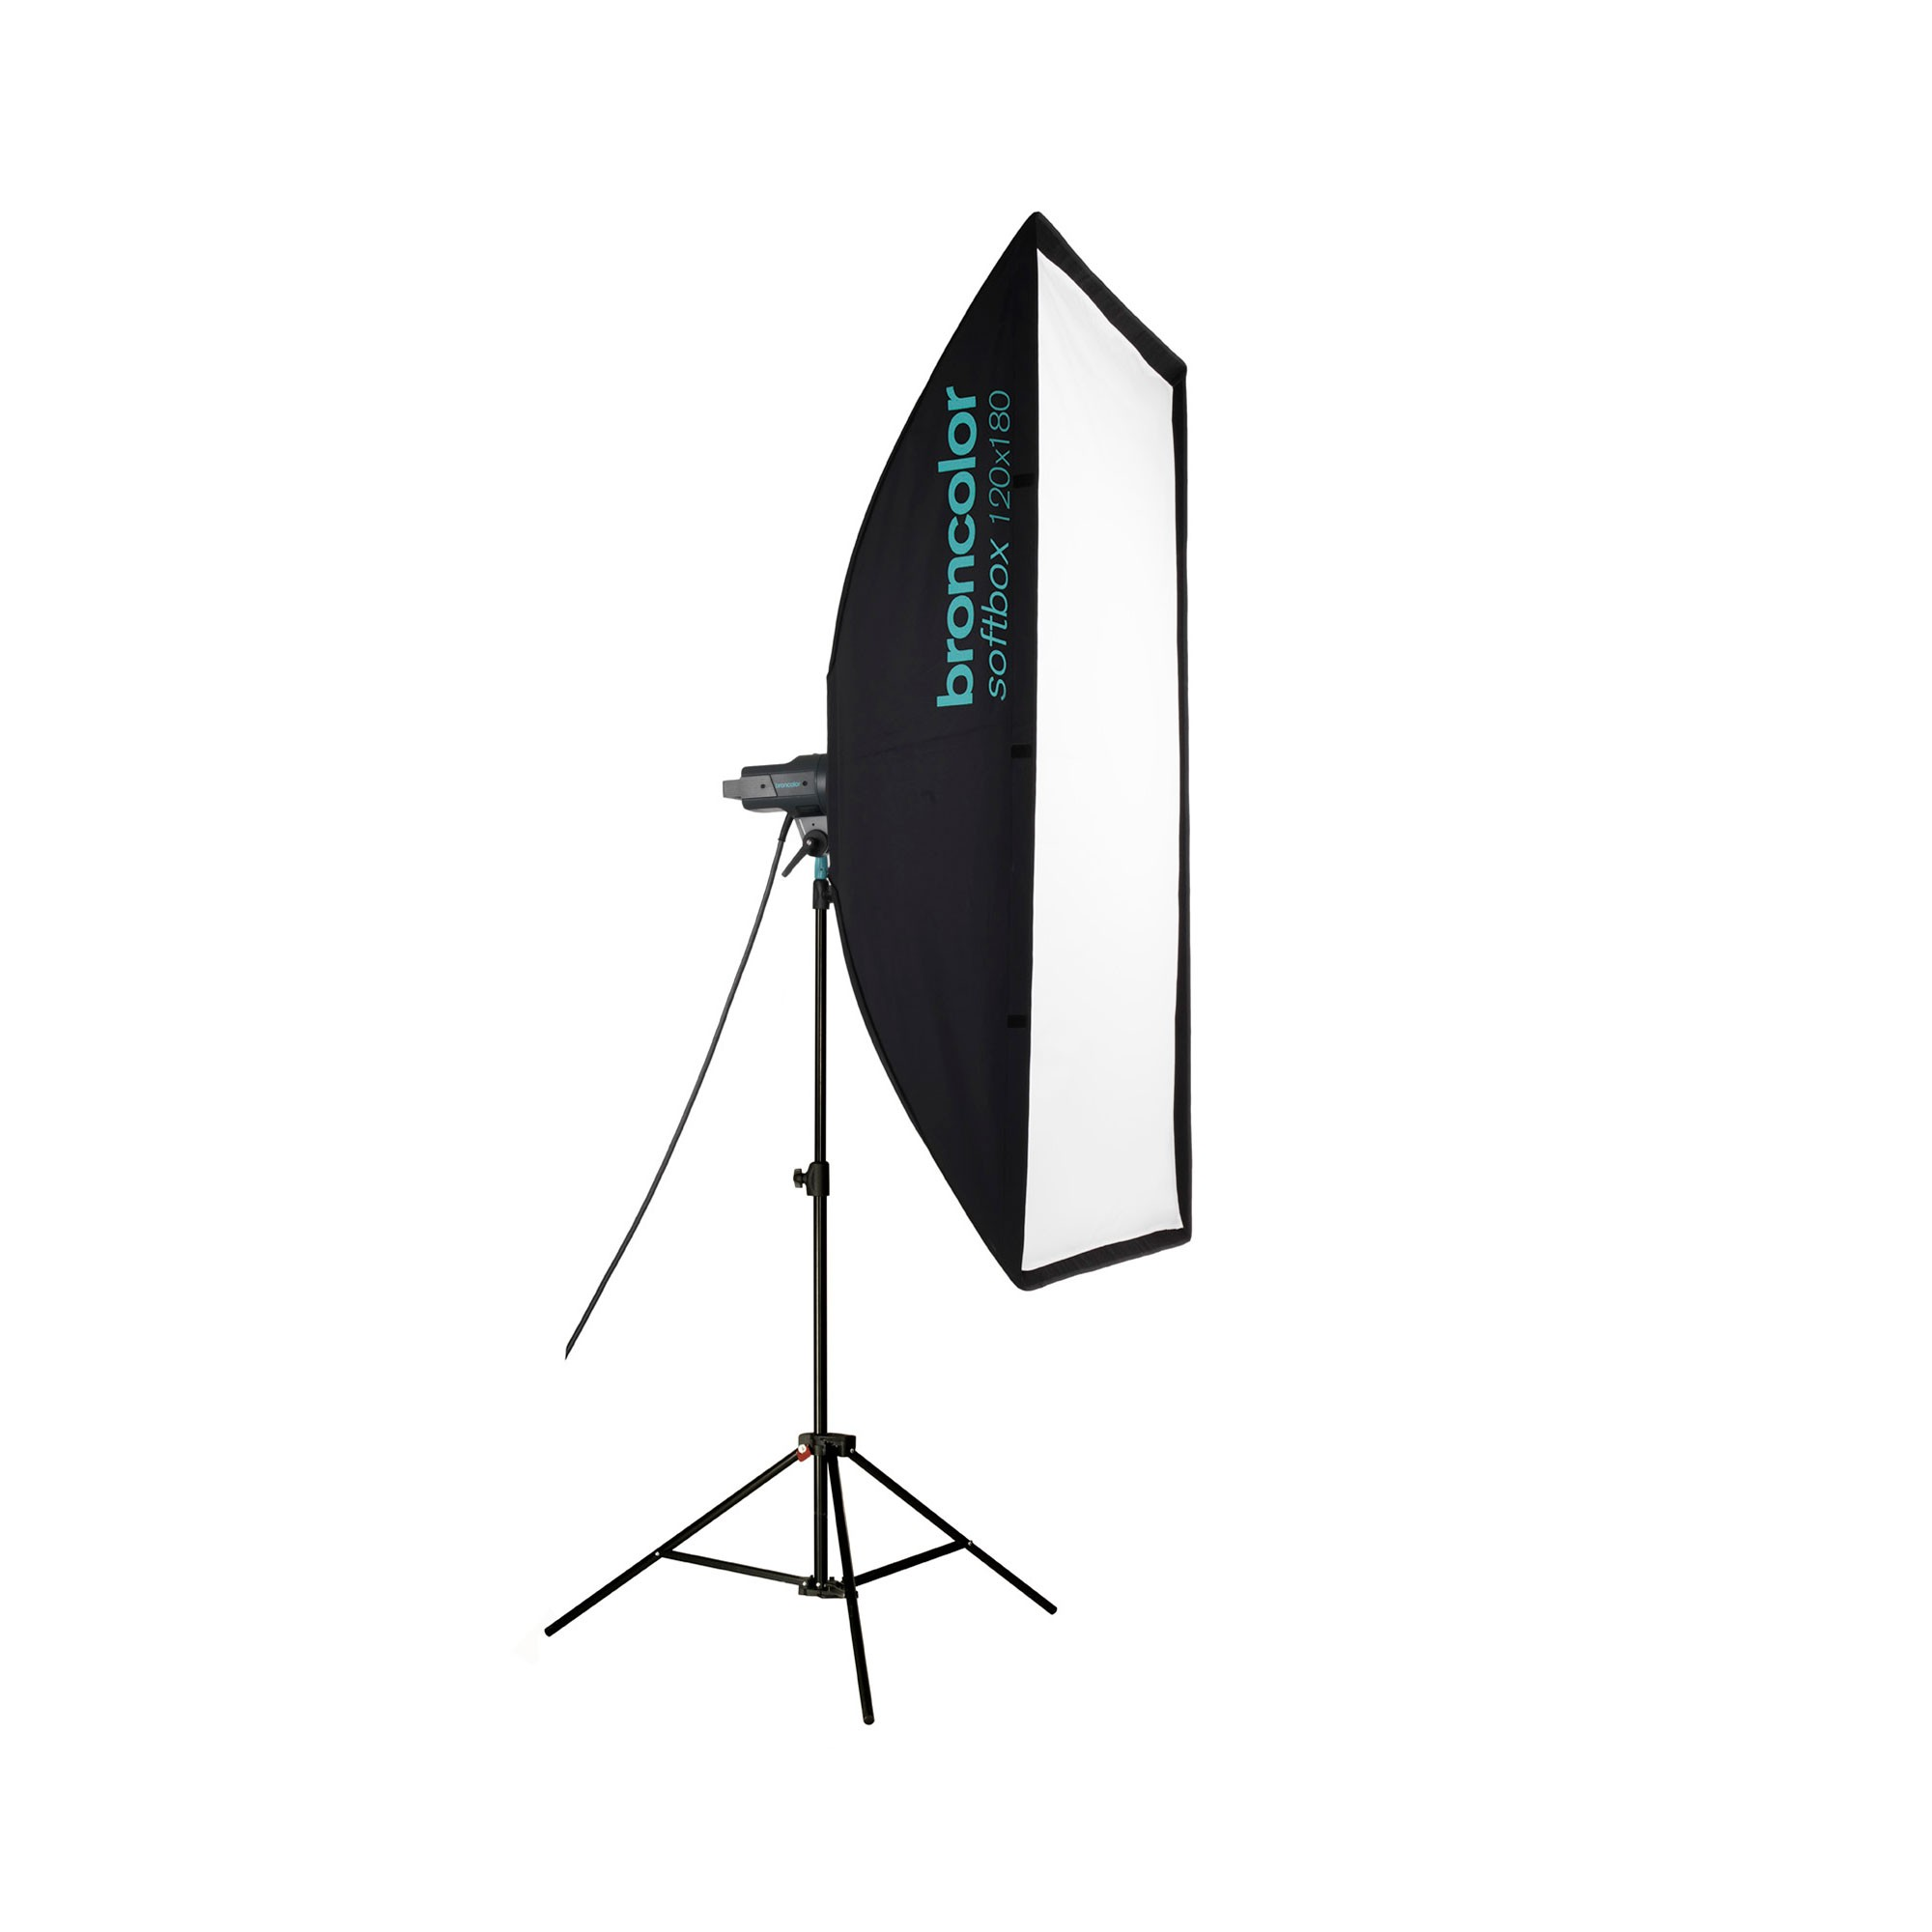 Broncolor Softbox 120x180 available to rent / verhuur / location at 50.8 Studio • Belgïe, Belgique, Belgium, Broncolor, Huur, Location, Louer, Photo, Rent, Rental, Softbox, Strobe, Studio, Verhuur, Video